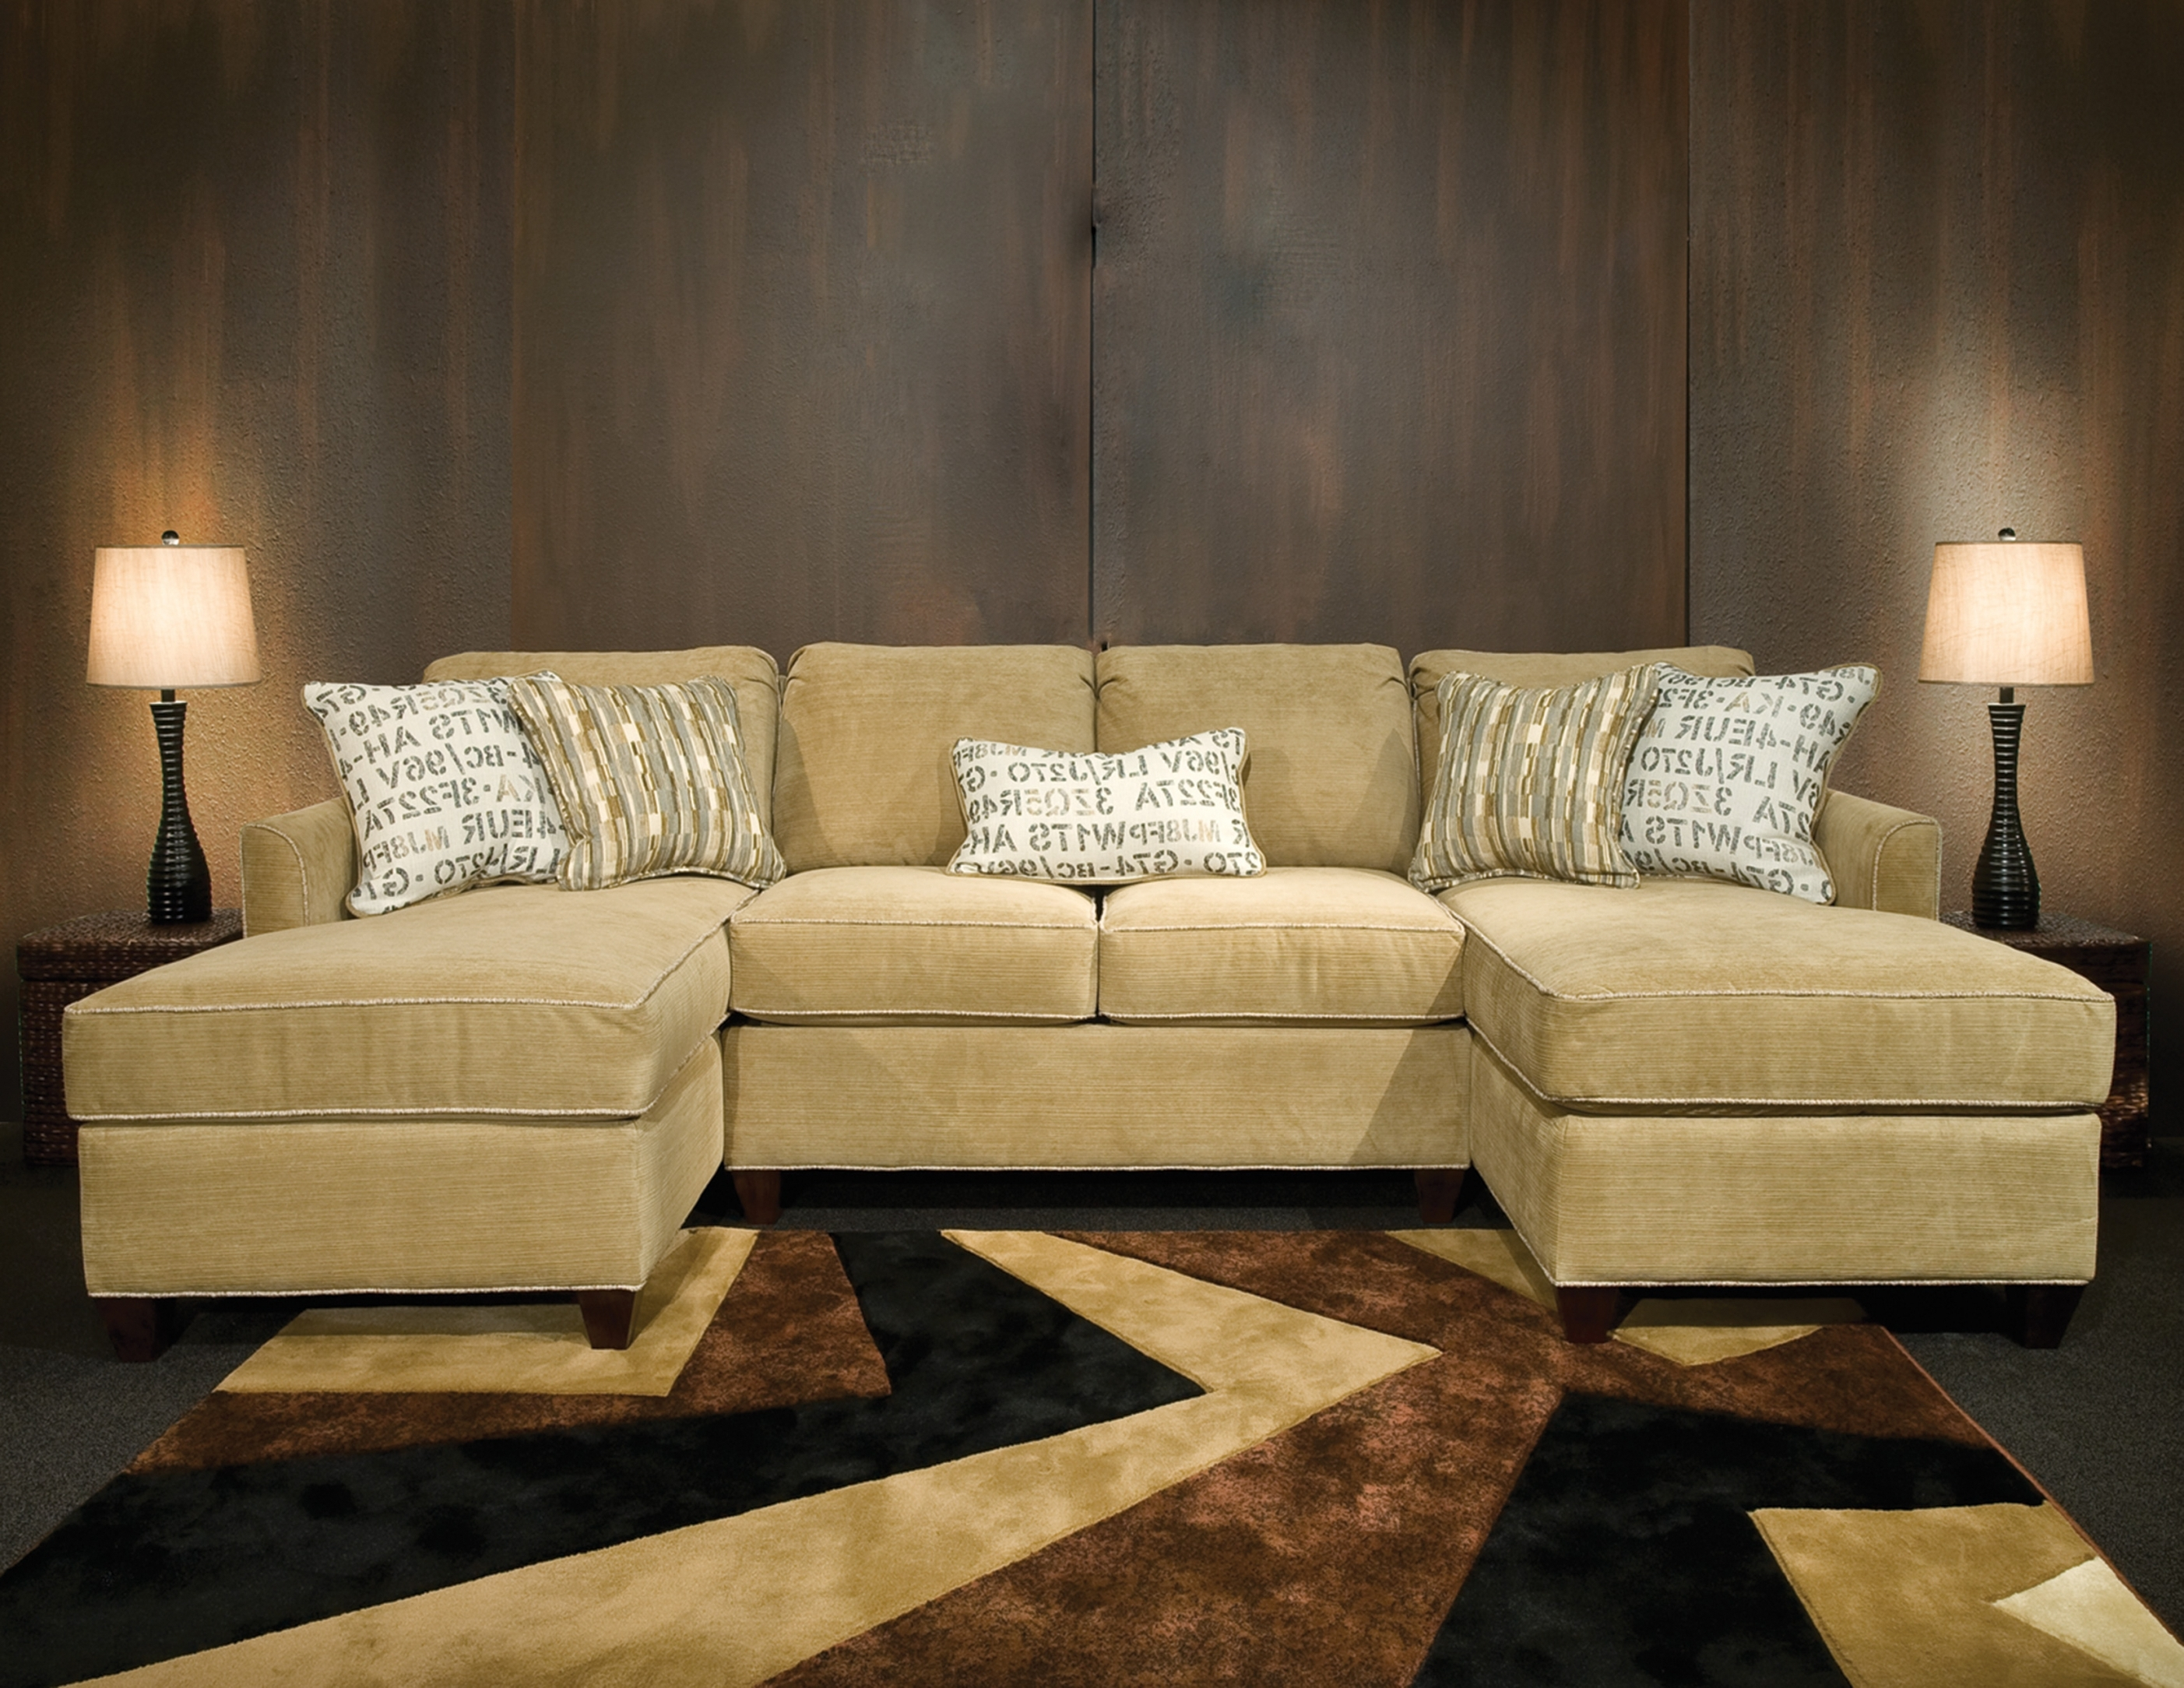 Fashionable Sectional Sofas With Double Chaise In Amusing Double Chaise Sectional Sofa 22 On Black Fabric Sectional (View 3 of 15)